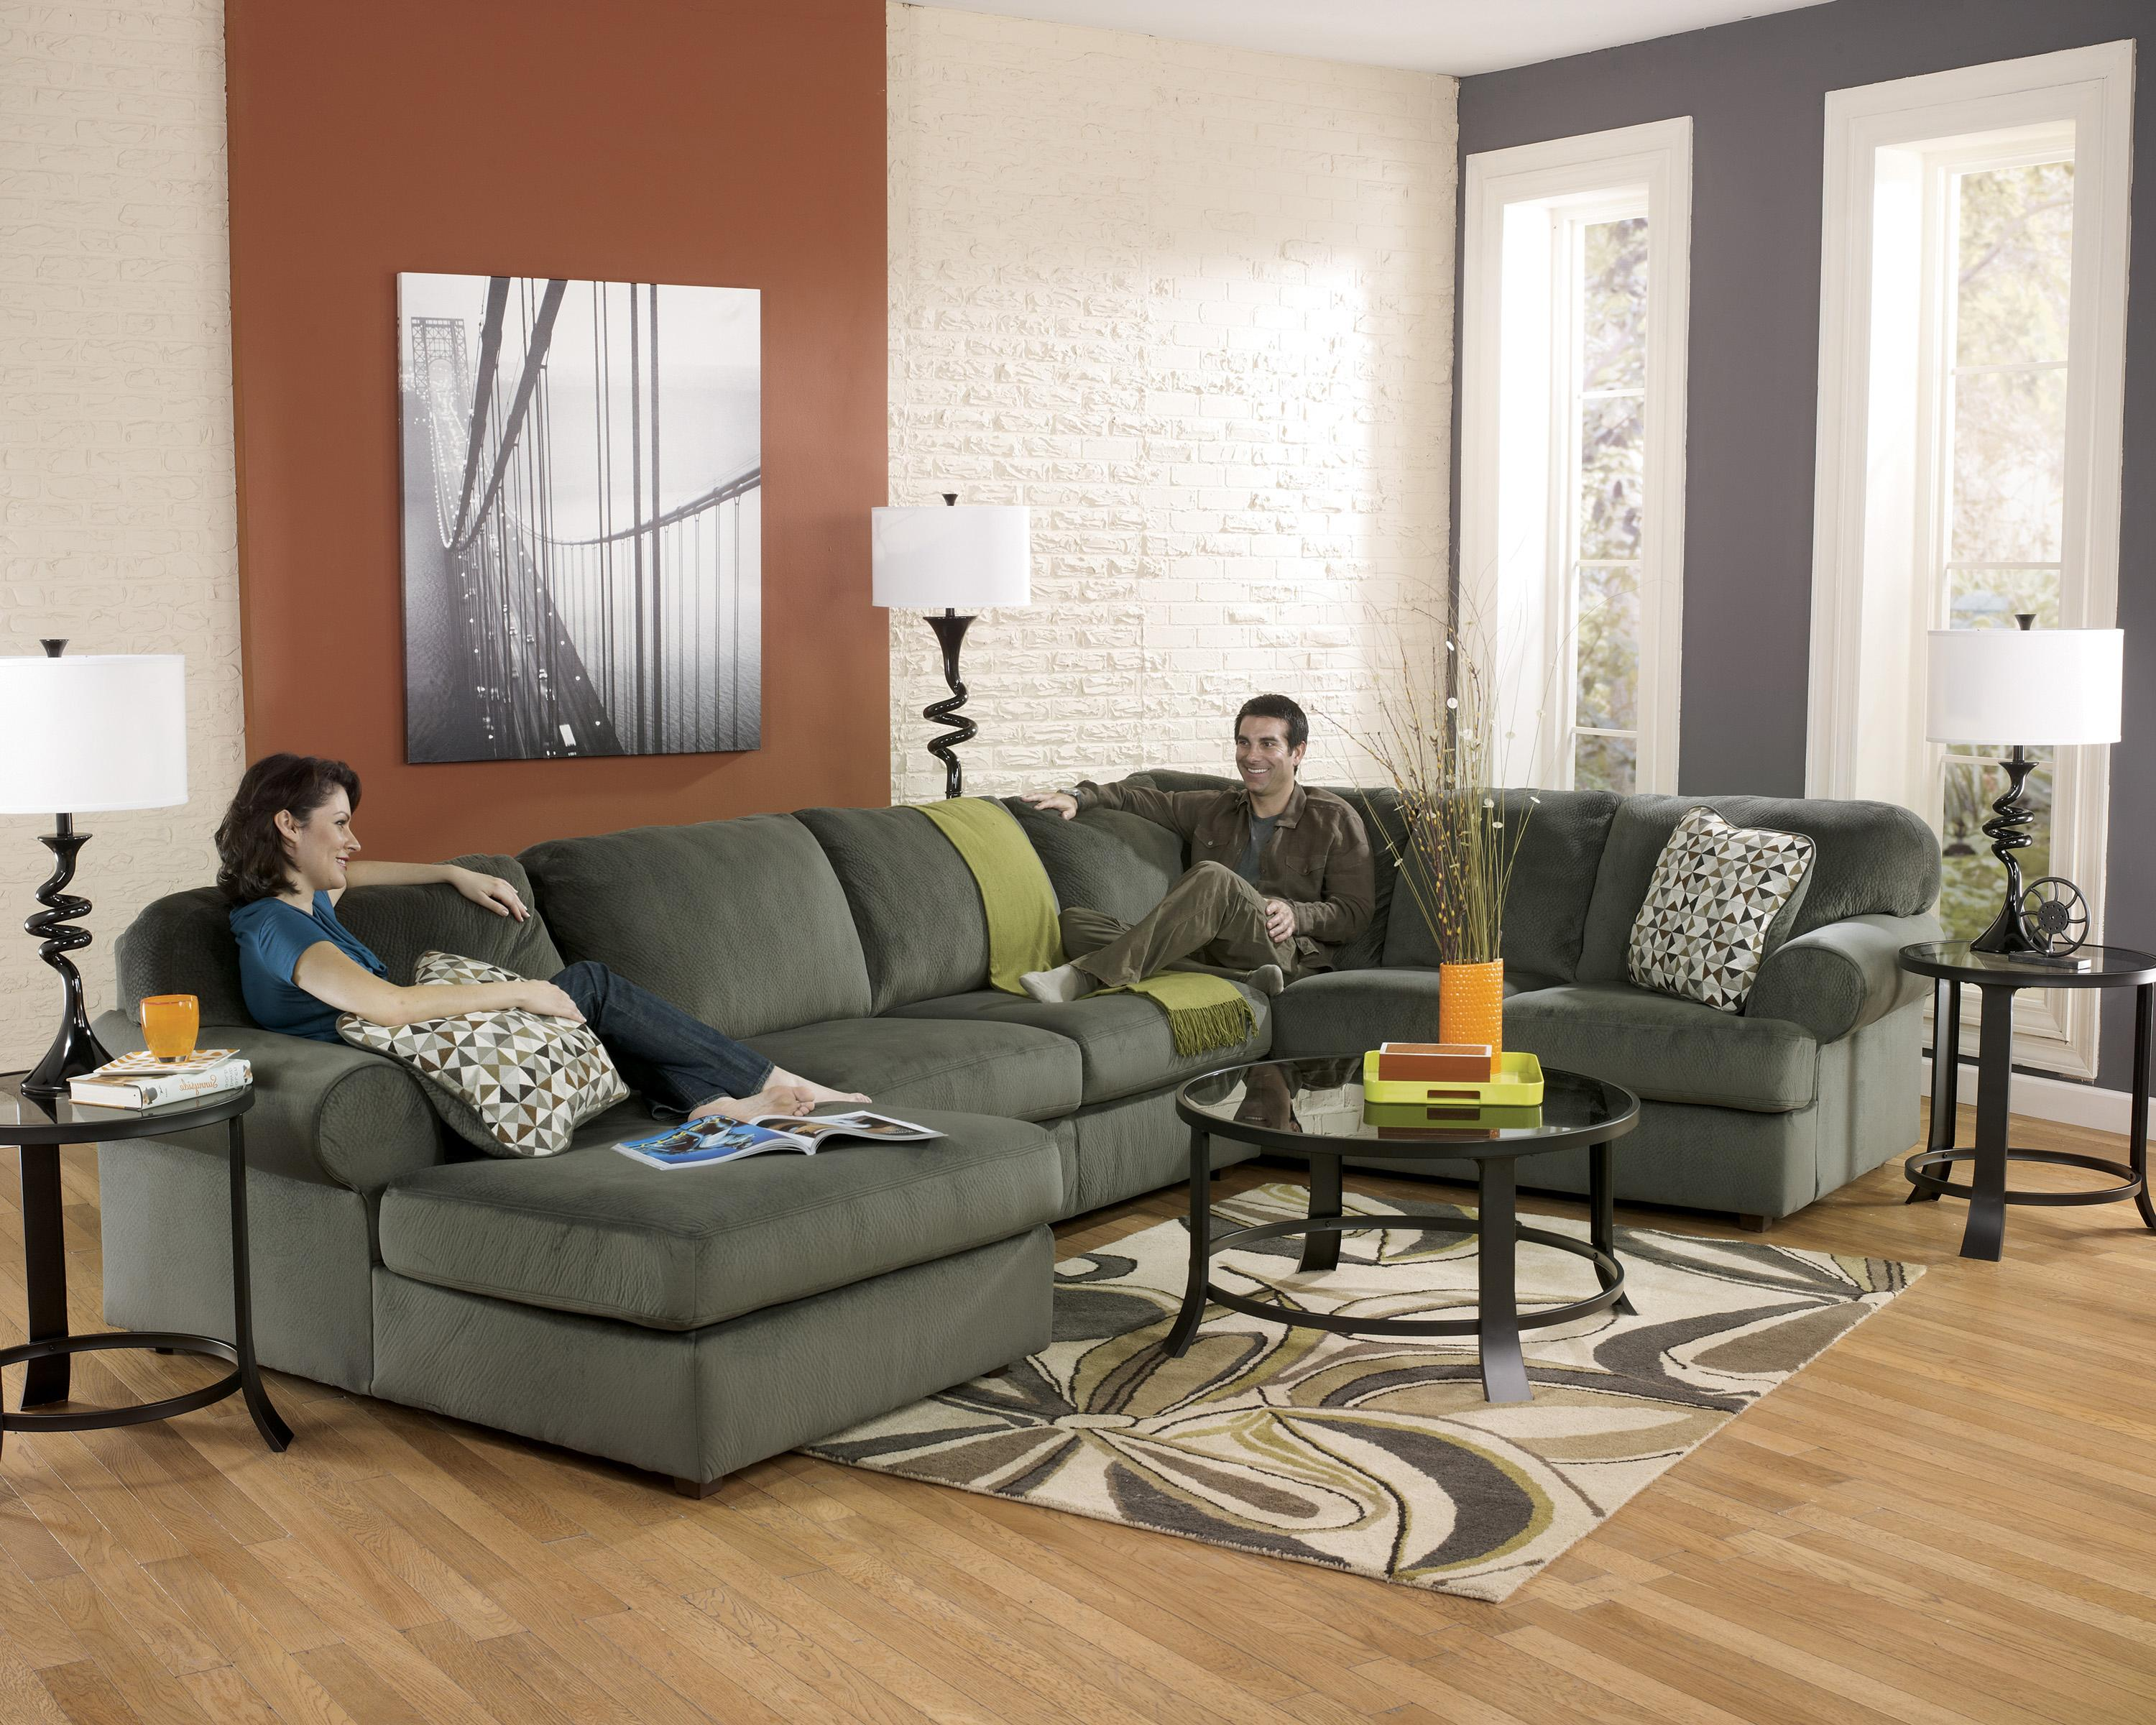 Signature Design by Ashley Jessa Place - Pewter Casual Sectional Sofa with Right Chaise - Wayside Furniture - Sofa Sectional : jessa place sectional dune - Sectionals, Sofas & Couches